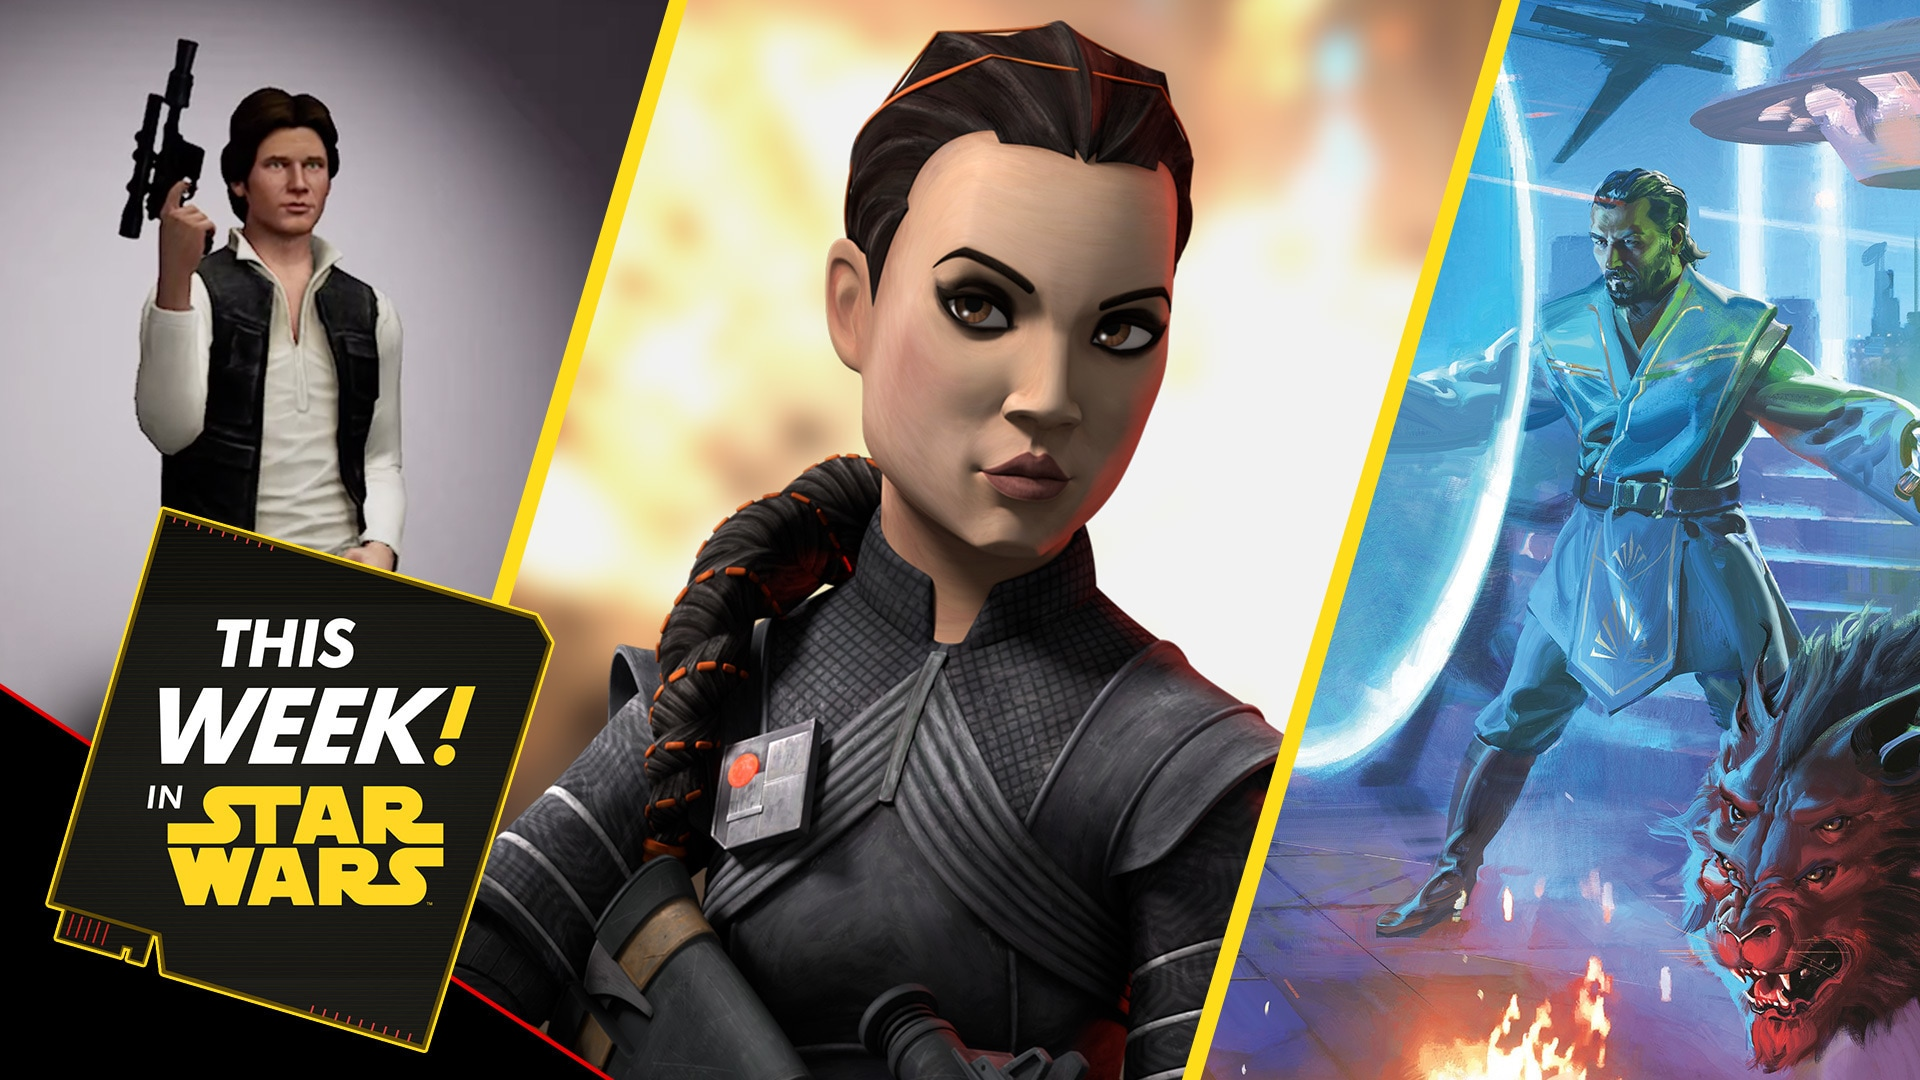 Fennec Shand Gets Animated, Han Solo Joins the Game, and More!